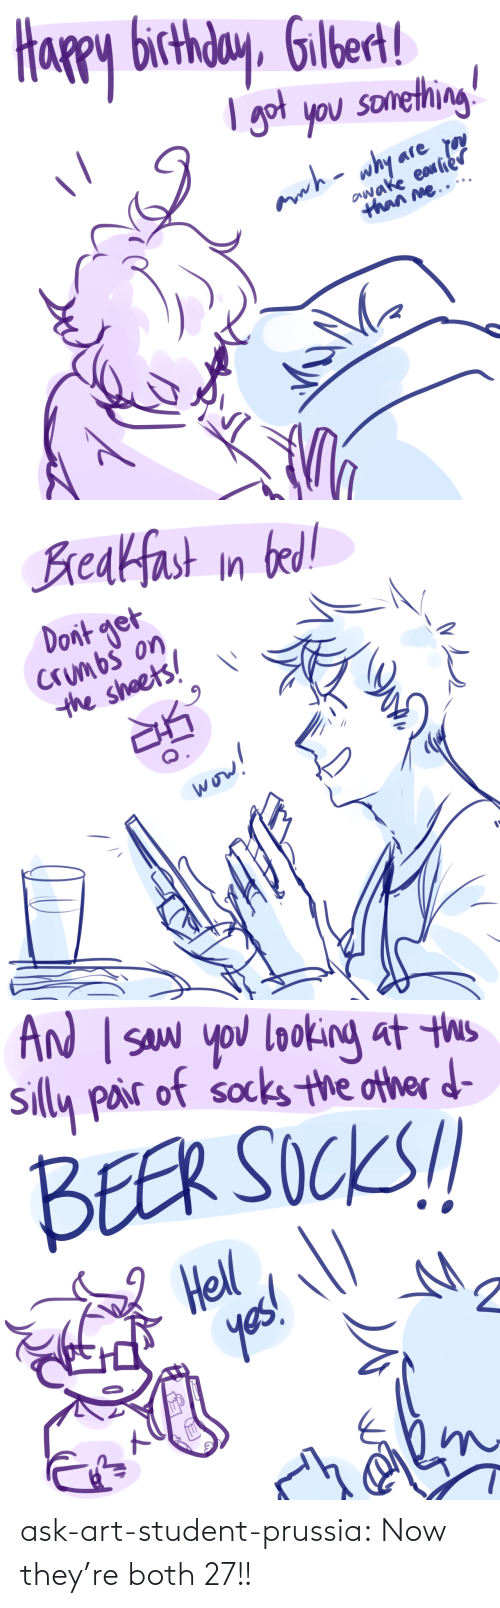 Tumblr Com: ask-art-student-prussia:  Now they're both 27!!